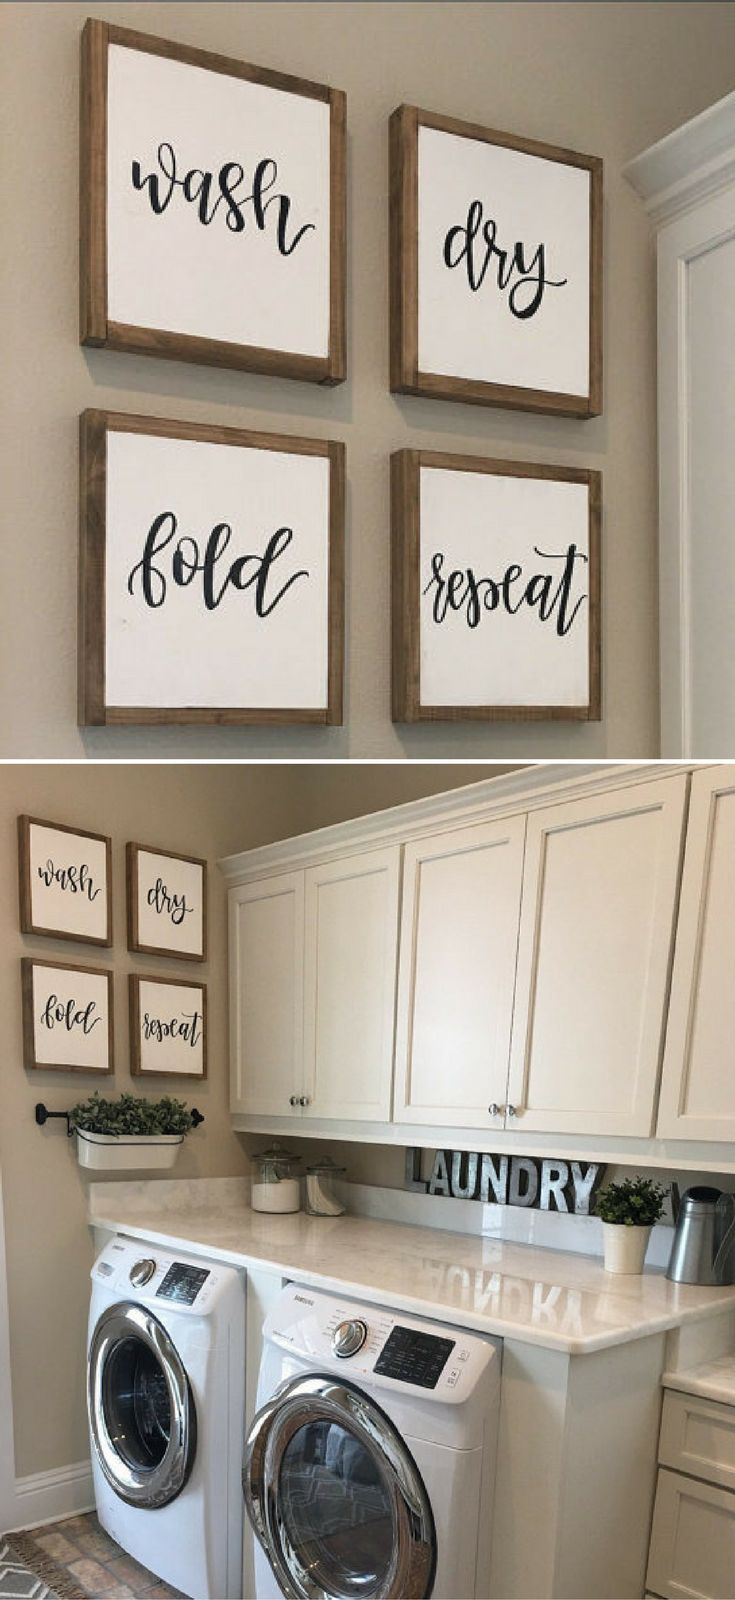 Laundry Room Wooden Signs Laundry Room Sign  Laundry Sign  Wash Dry Fold Repeat Sign